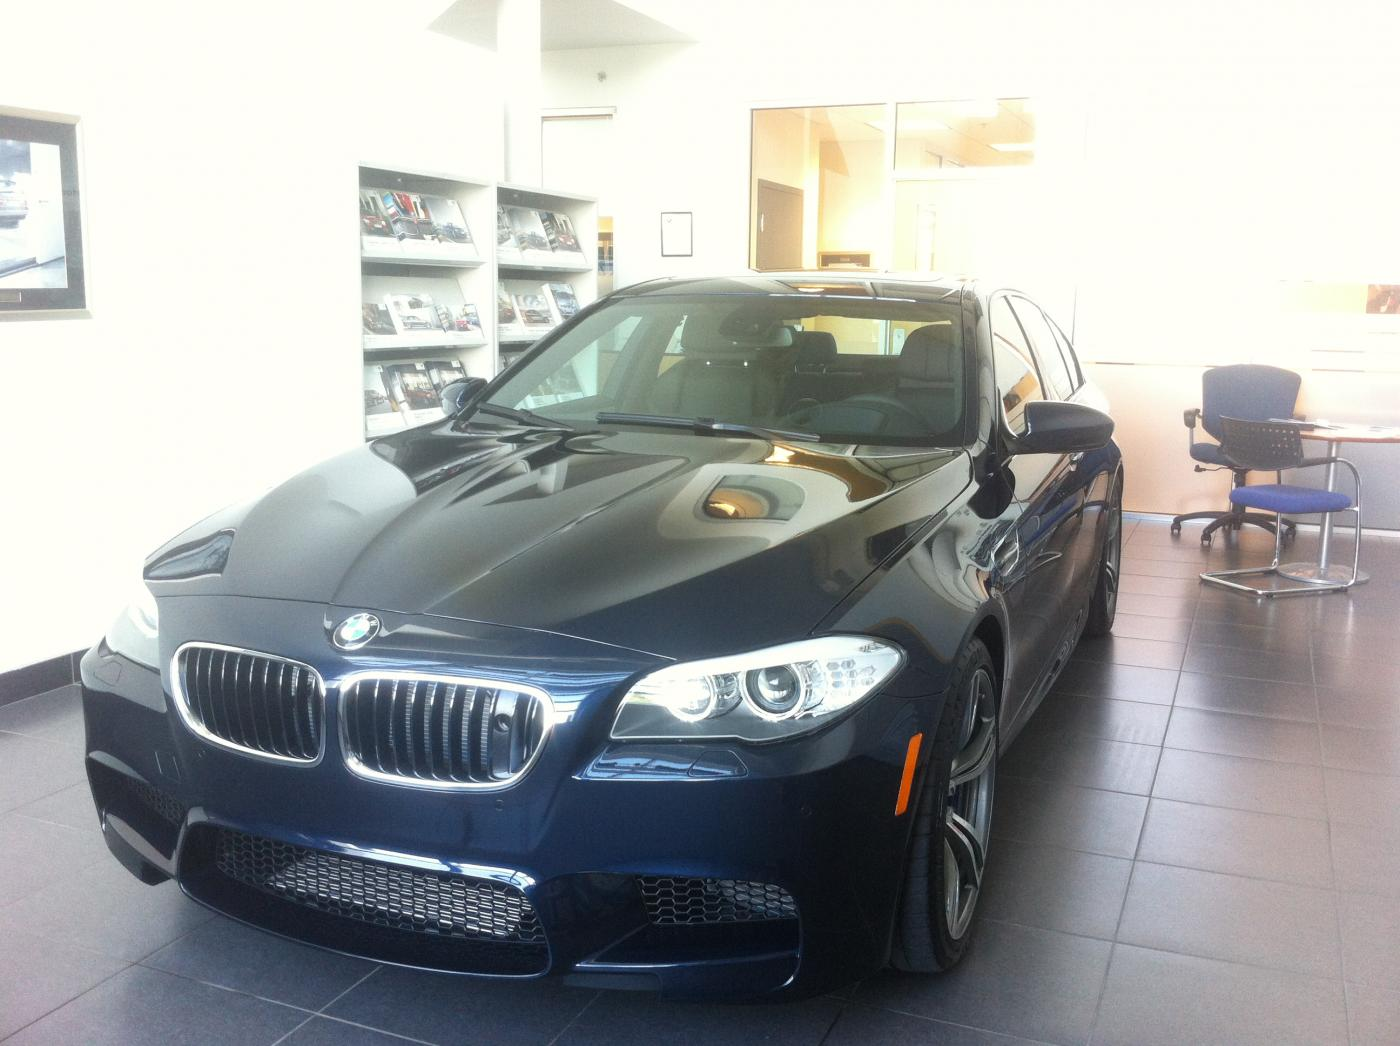 Bmw color code a89 imperial blue metallic dealerrevs com - Attached Images